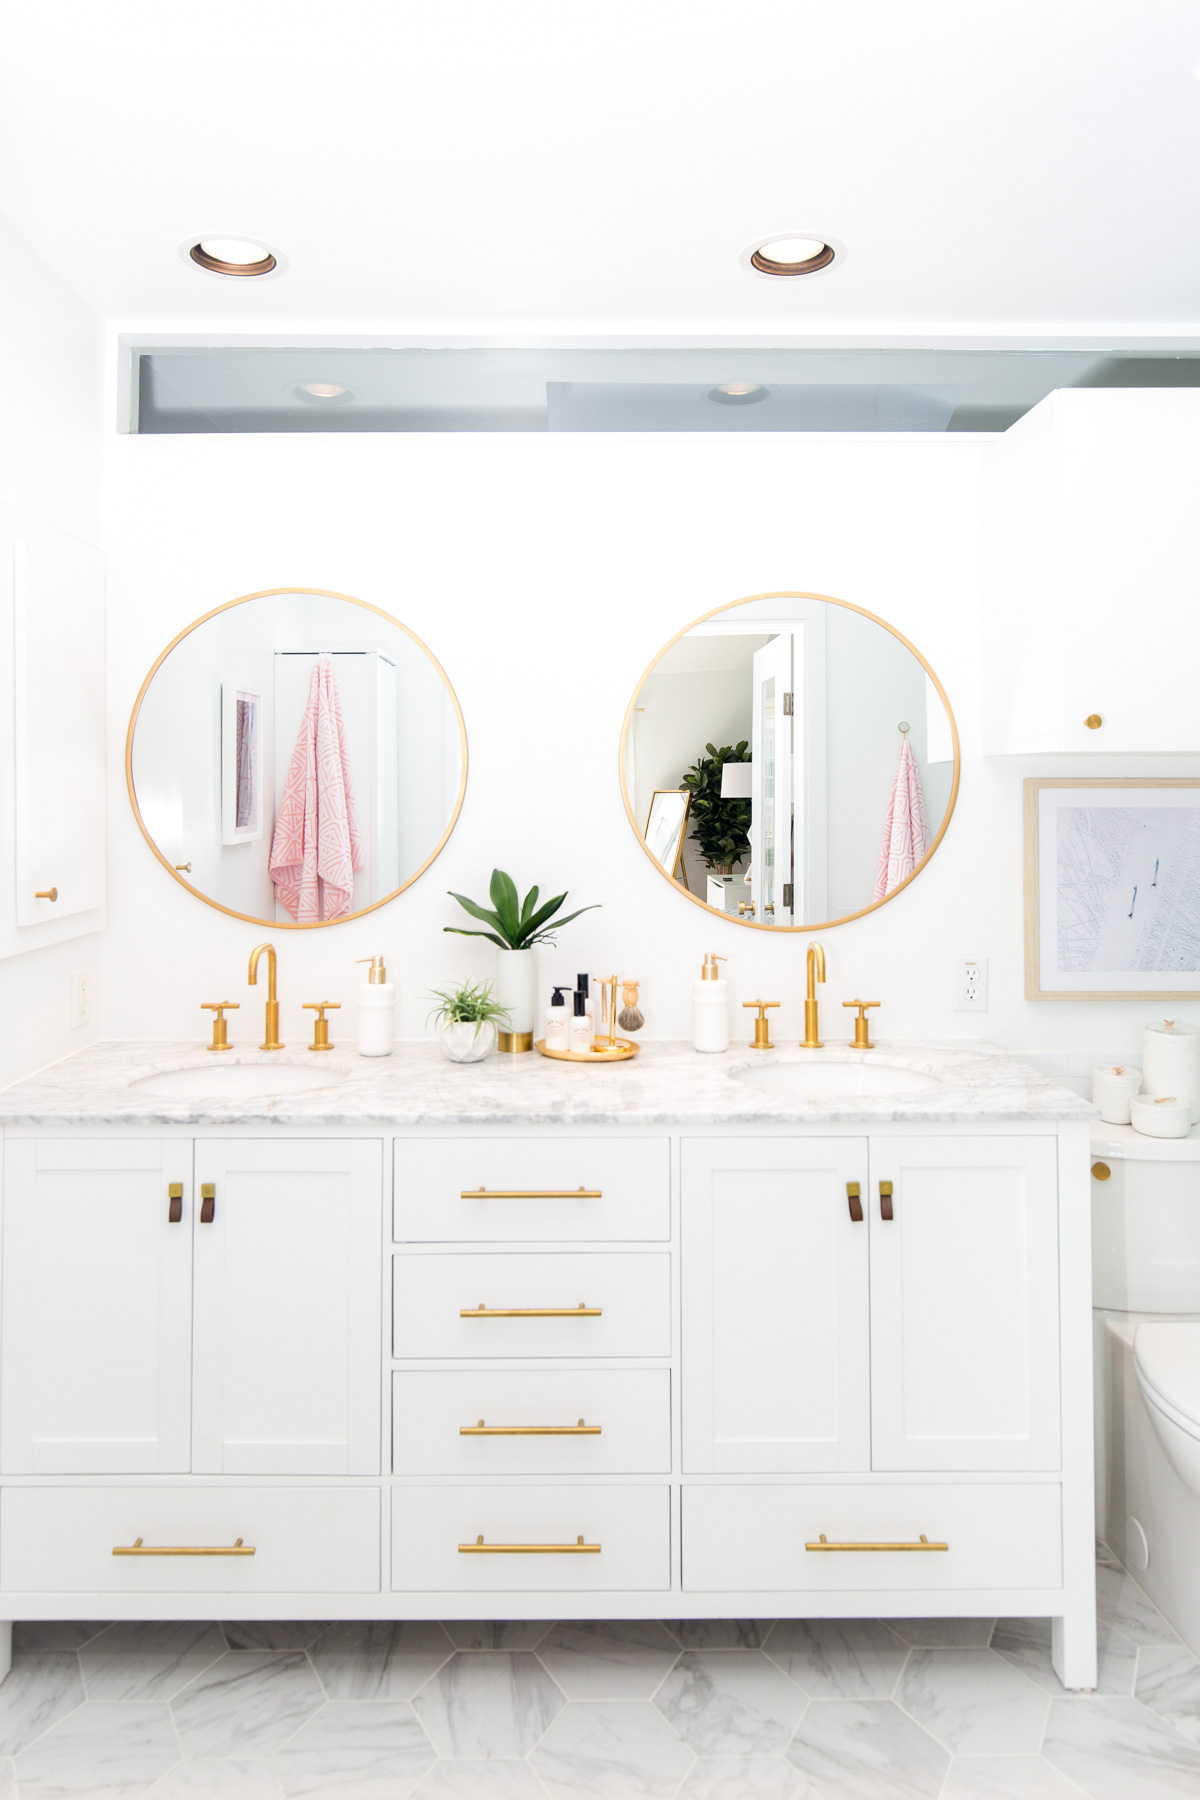 Pretty circle brass rim mirrors in this bathroom remodel make this bathroom decor! Such a pretty bathroom remodel, love it!